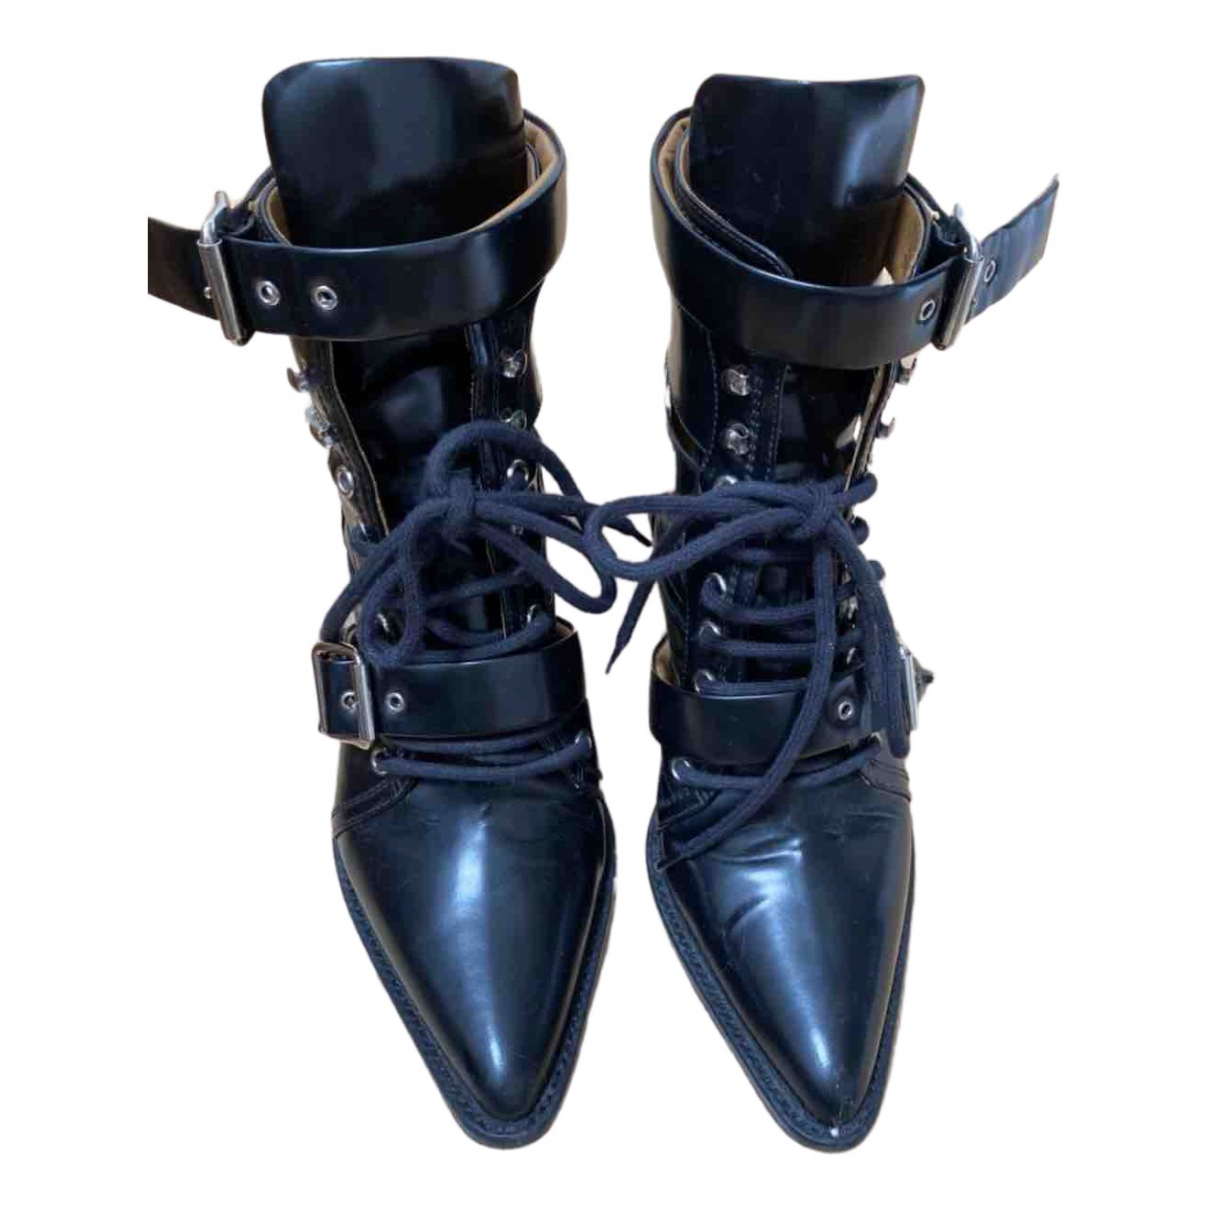 Chloé Rylee Black Patent leather Ankle boots for Women 39.5 EU